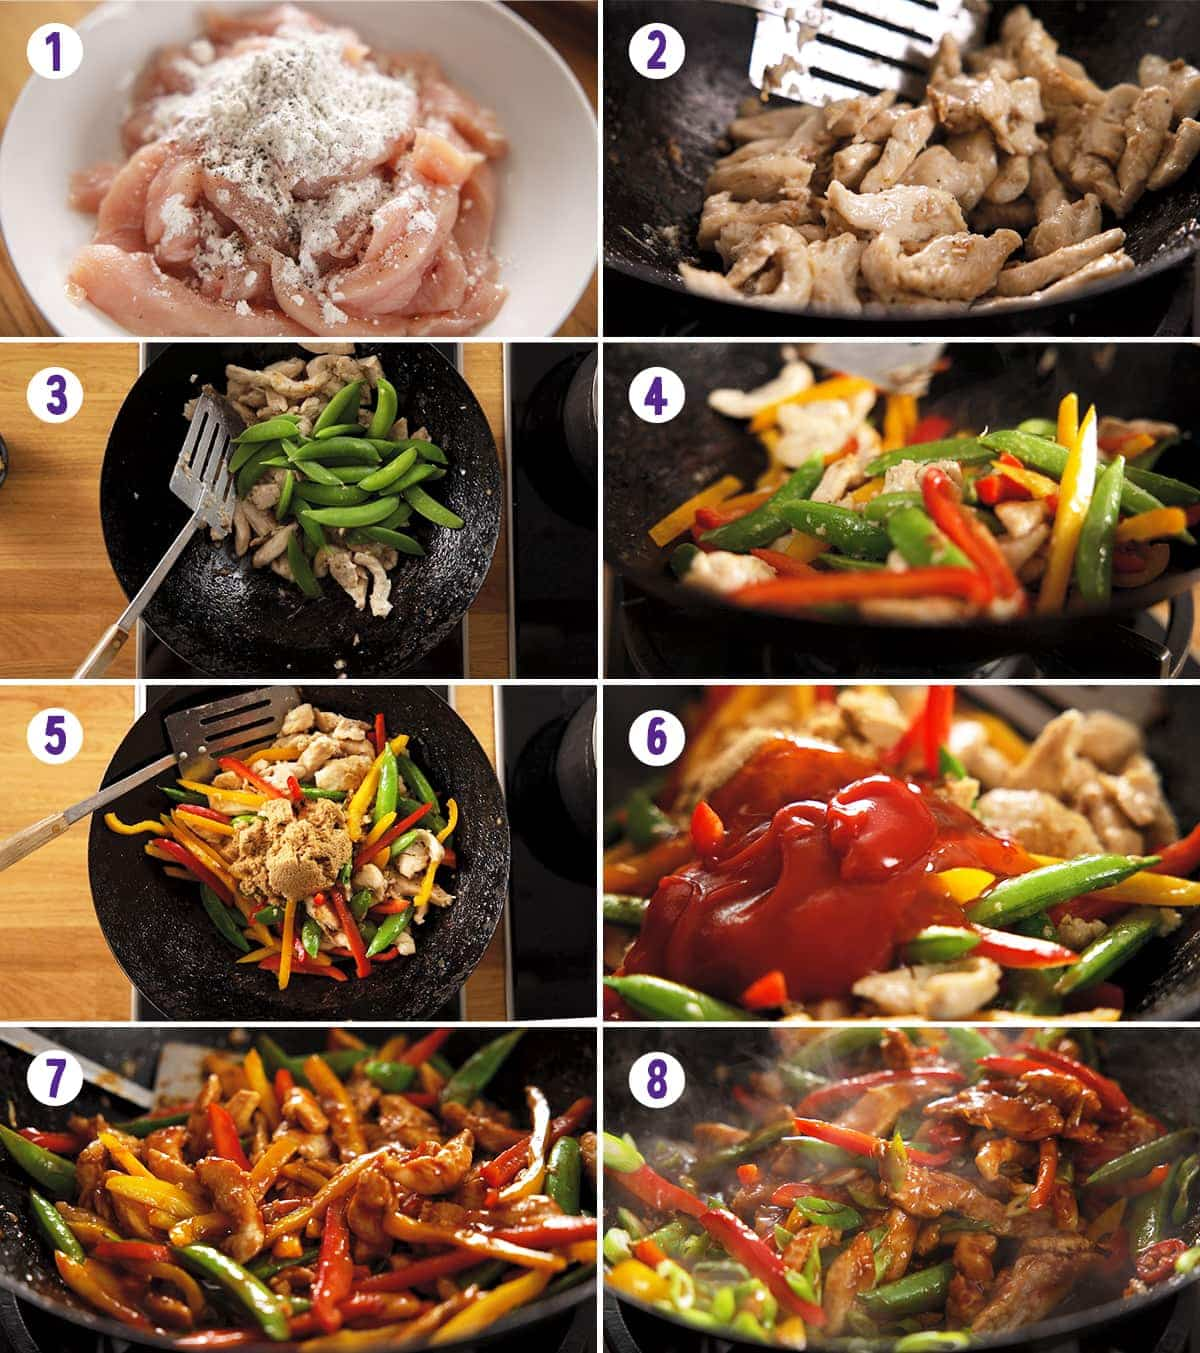 8 image collage showing how to make chicken stir fry